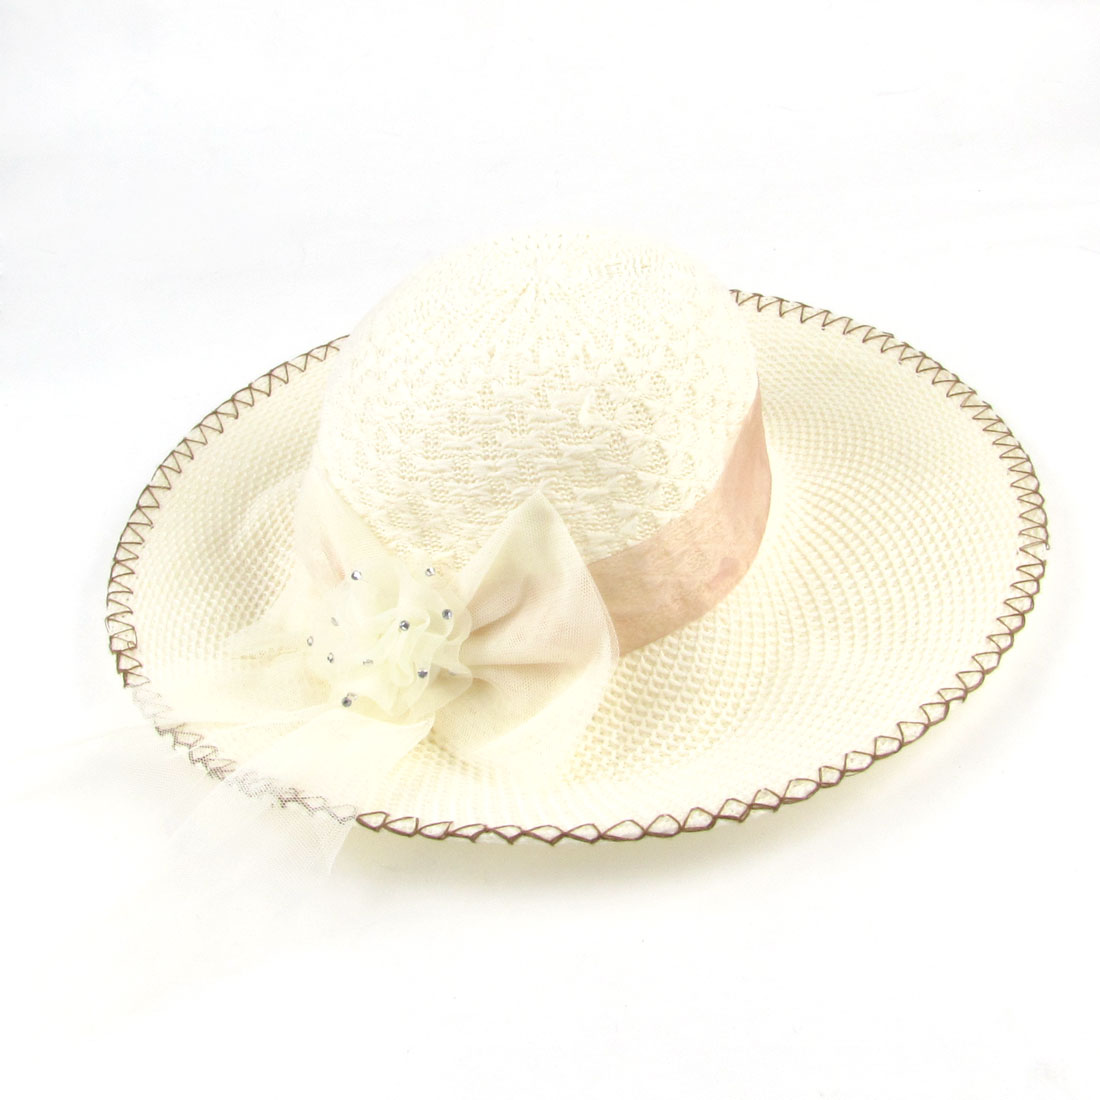 Head Wear Mesh Bowknot Decor Brown Stitch Hem Braided Cap Hat Ivory for Ladies